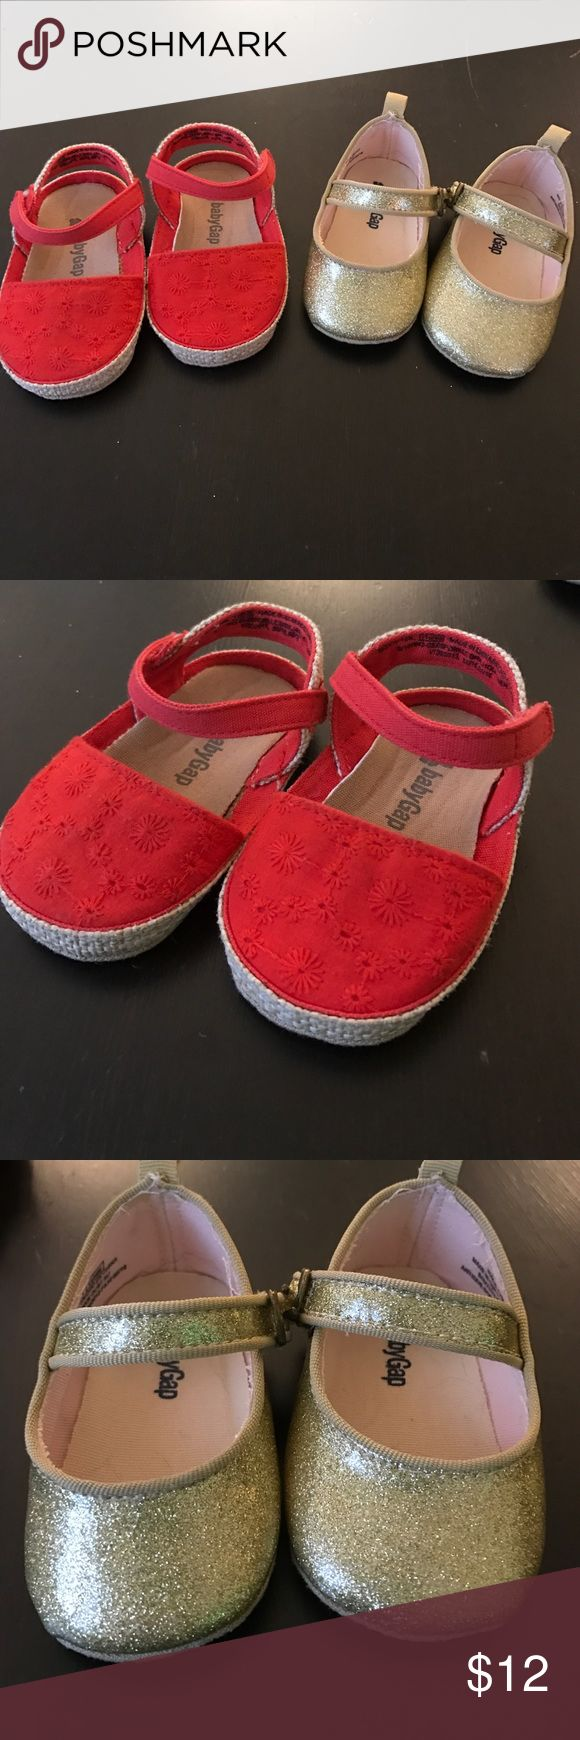 Baby Gap Shoe Bundle 2 pairs of like new shoes. GAP Shoes Baby & Walker